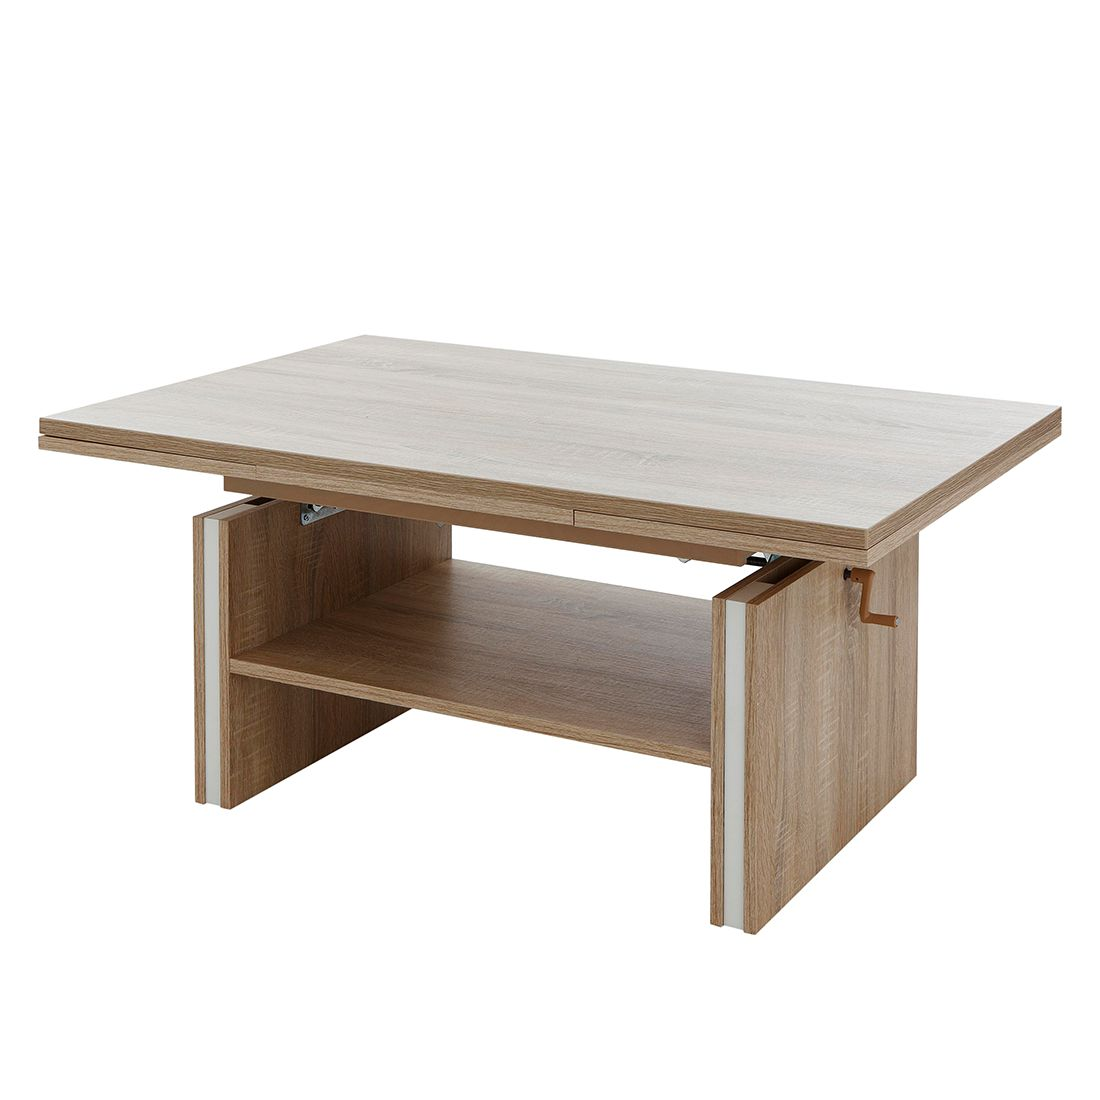 Table basse Panadura